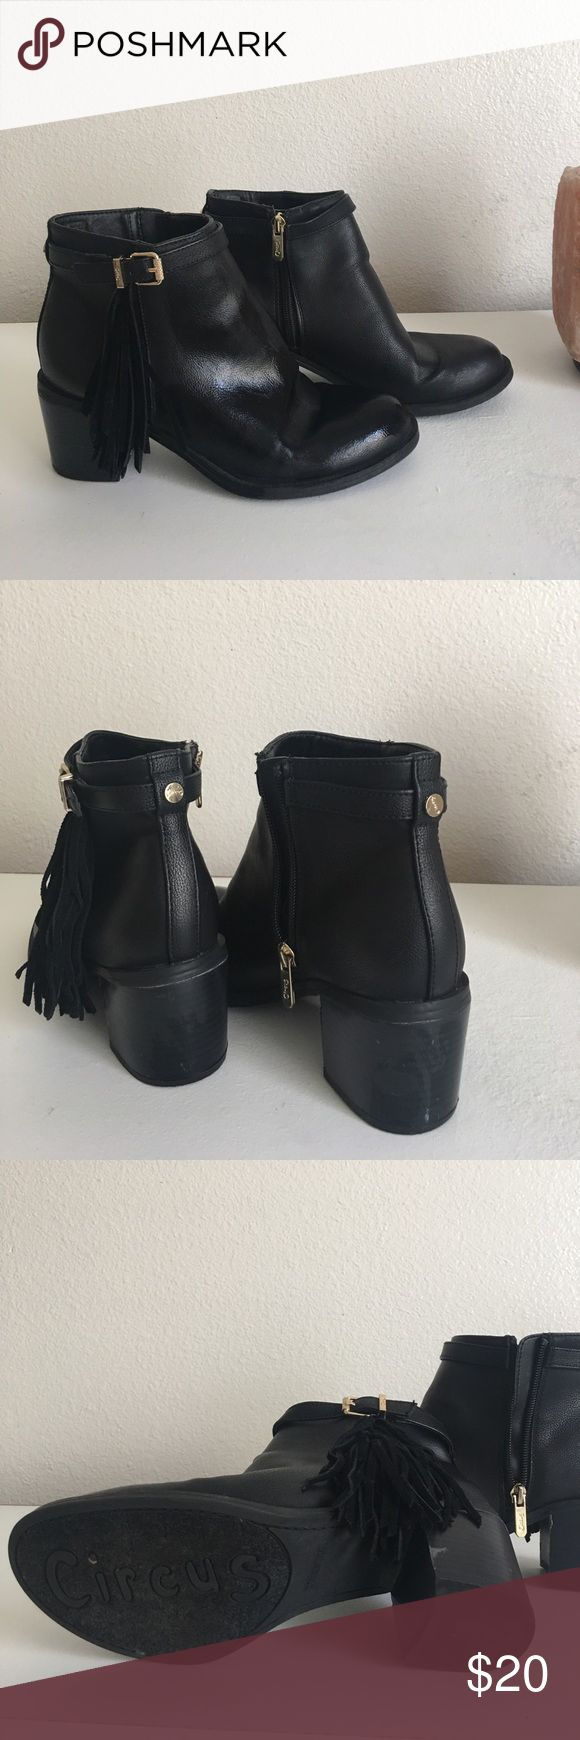 👡 Circus Sam Edleman Booties 👡 NWOT Sam Edleman Circus Booties 👡👡                                    Color: Black.                                                                                     Detail: Fringe/ Gold Buckle.                                                               Size: 8 Circus by Sam Edelman Shoes Ankle Boots & Booties